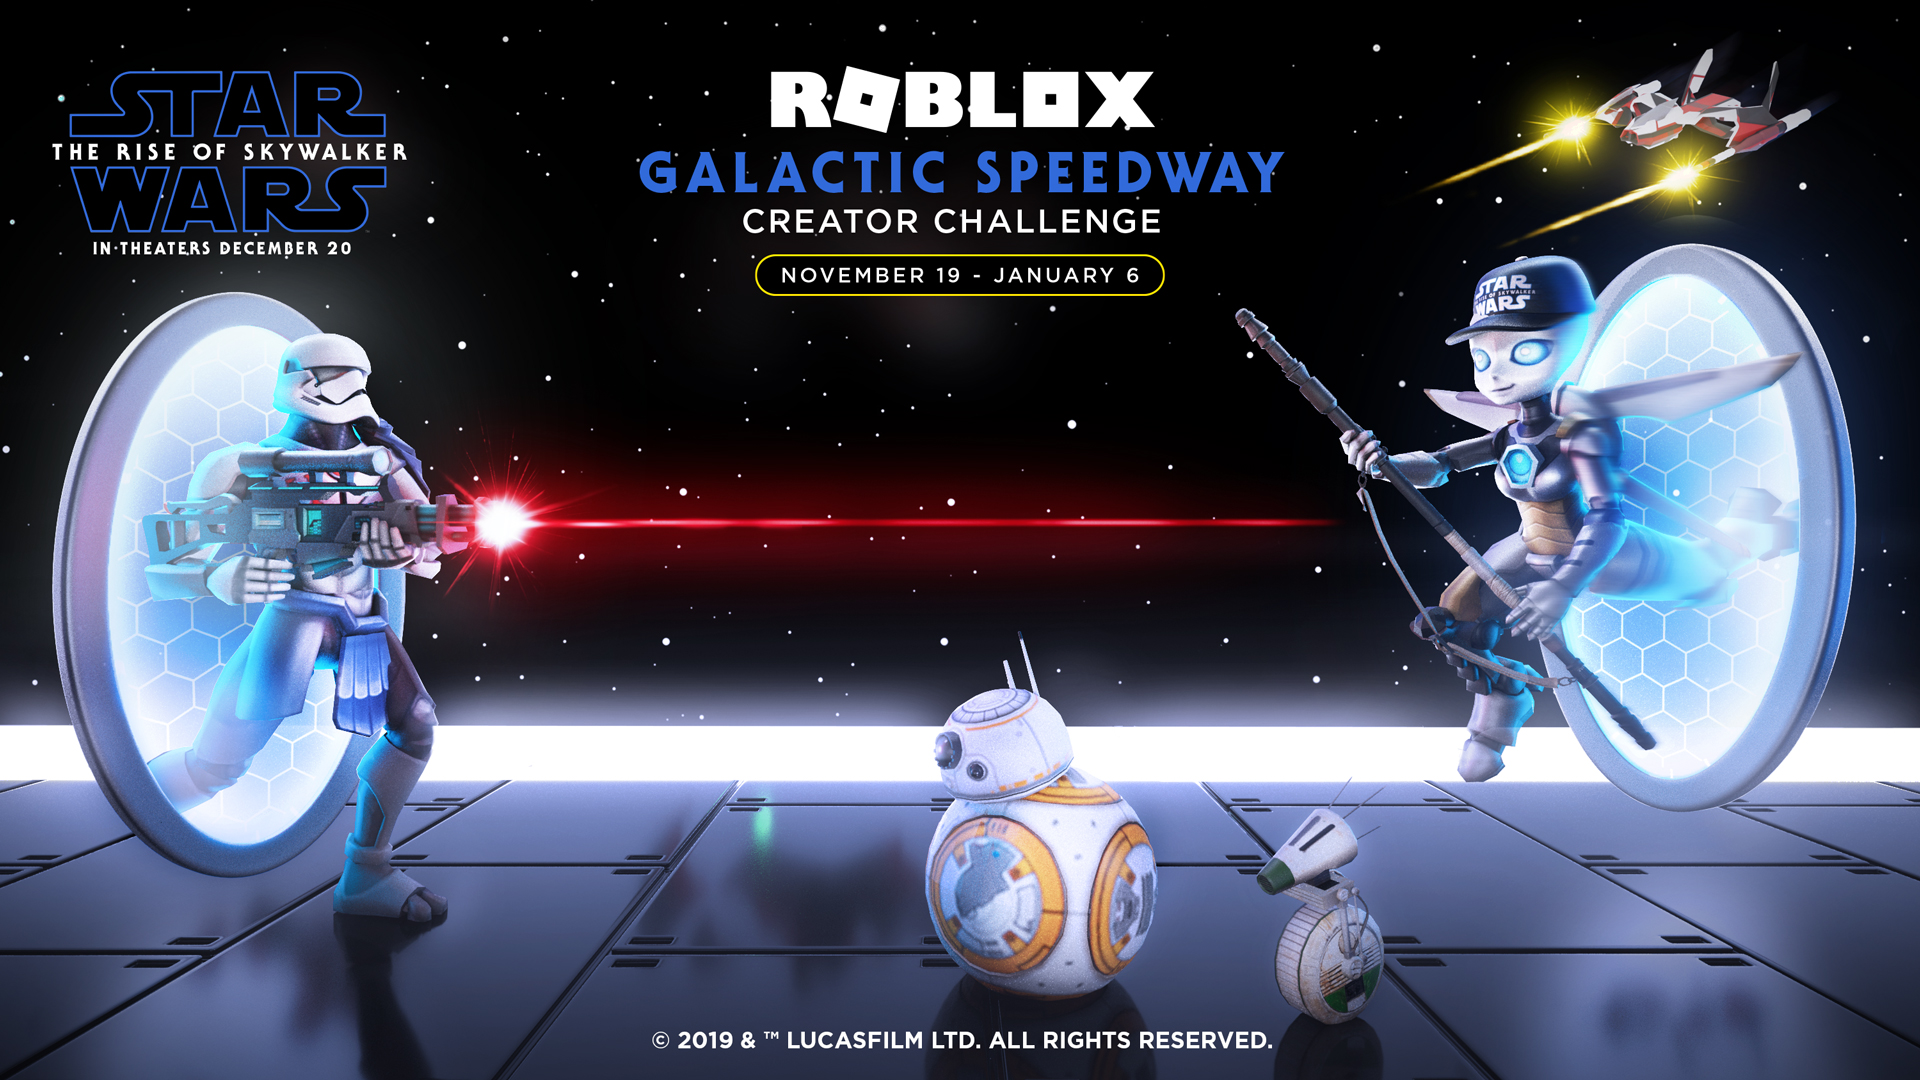 Roblox team up with Star Wars: The Rise of Skywalker for their latest Creator Challenge